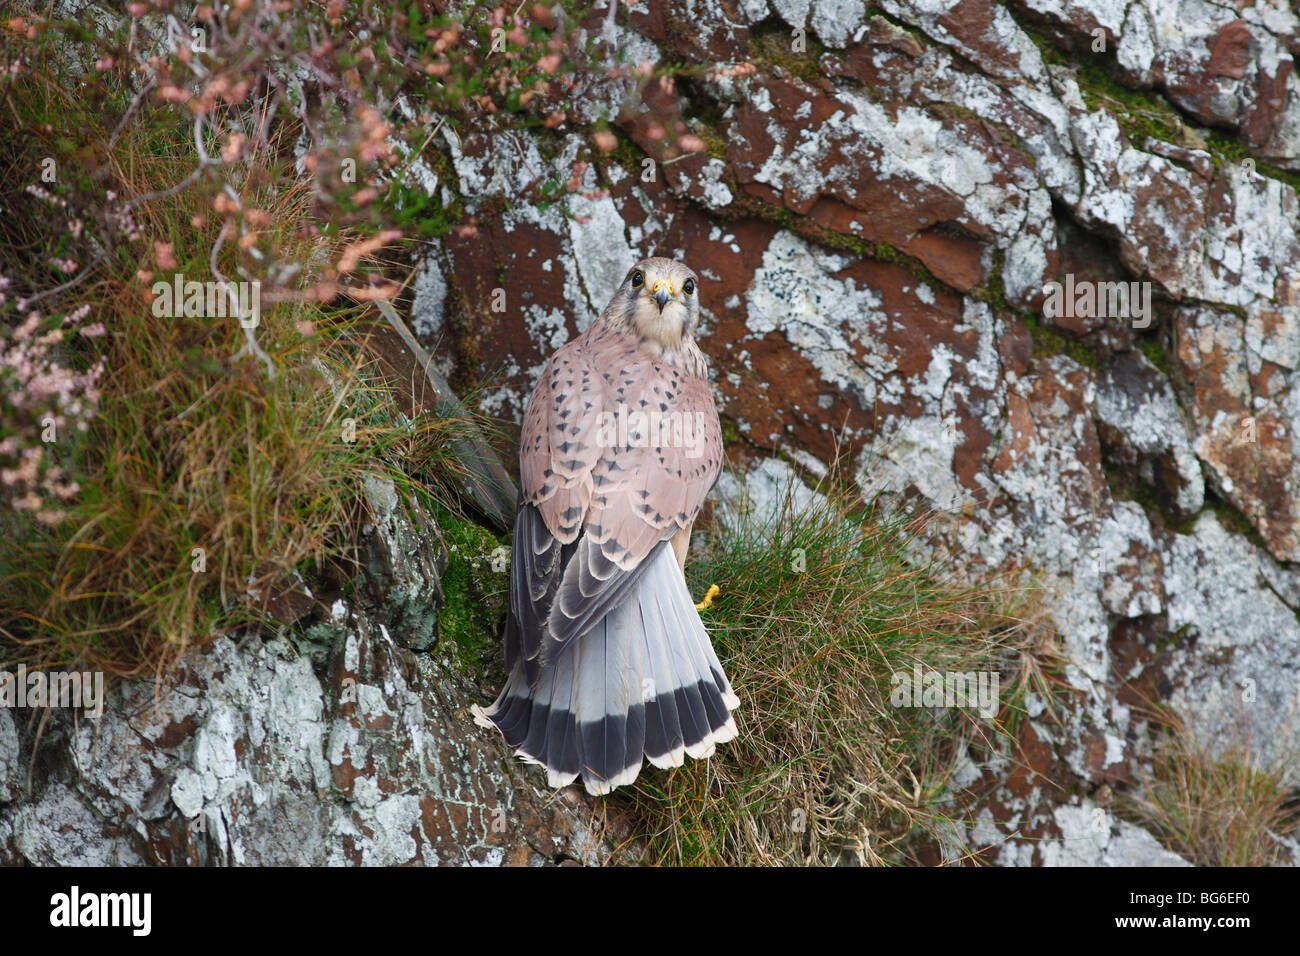 kestrel (Falco tinnunculus) male at nest on cliff ledge - Stock Image